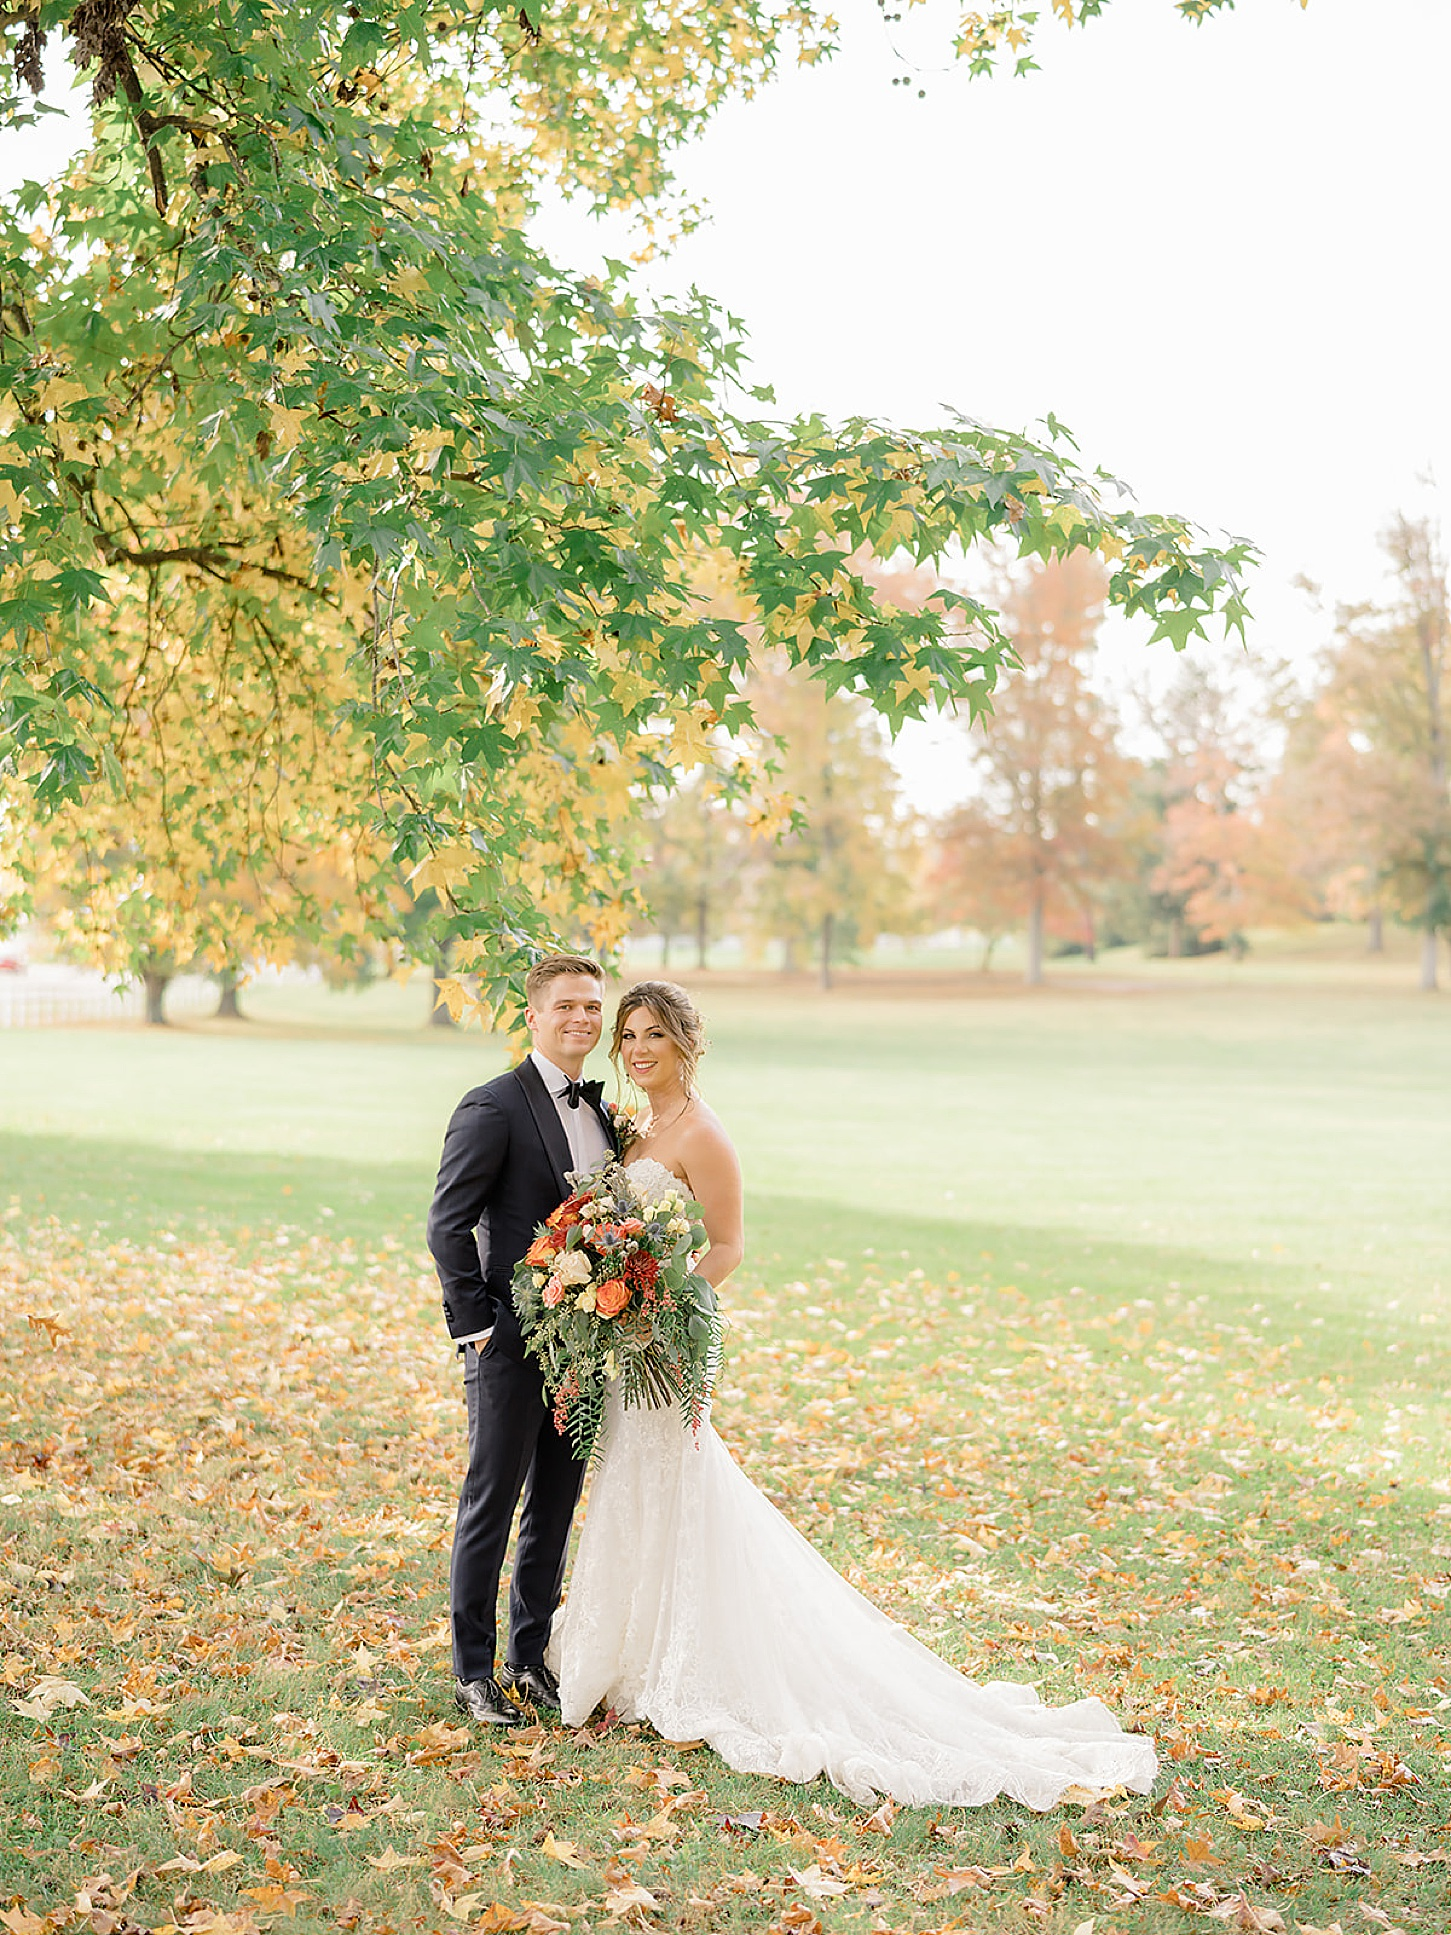 Tennessee Destination Wedding Photography by Magdalena Studios 0024